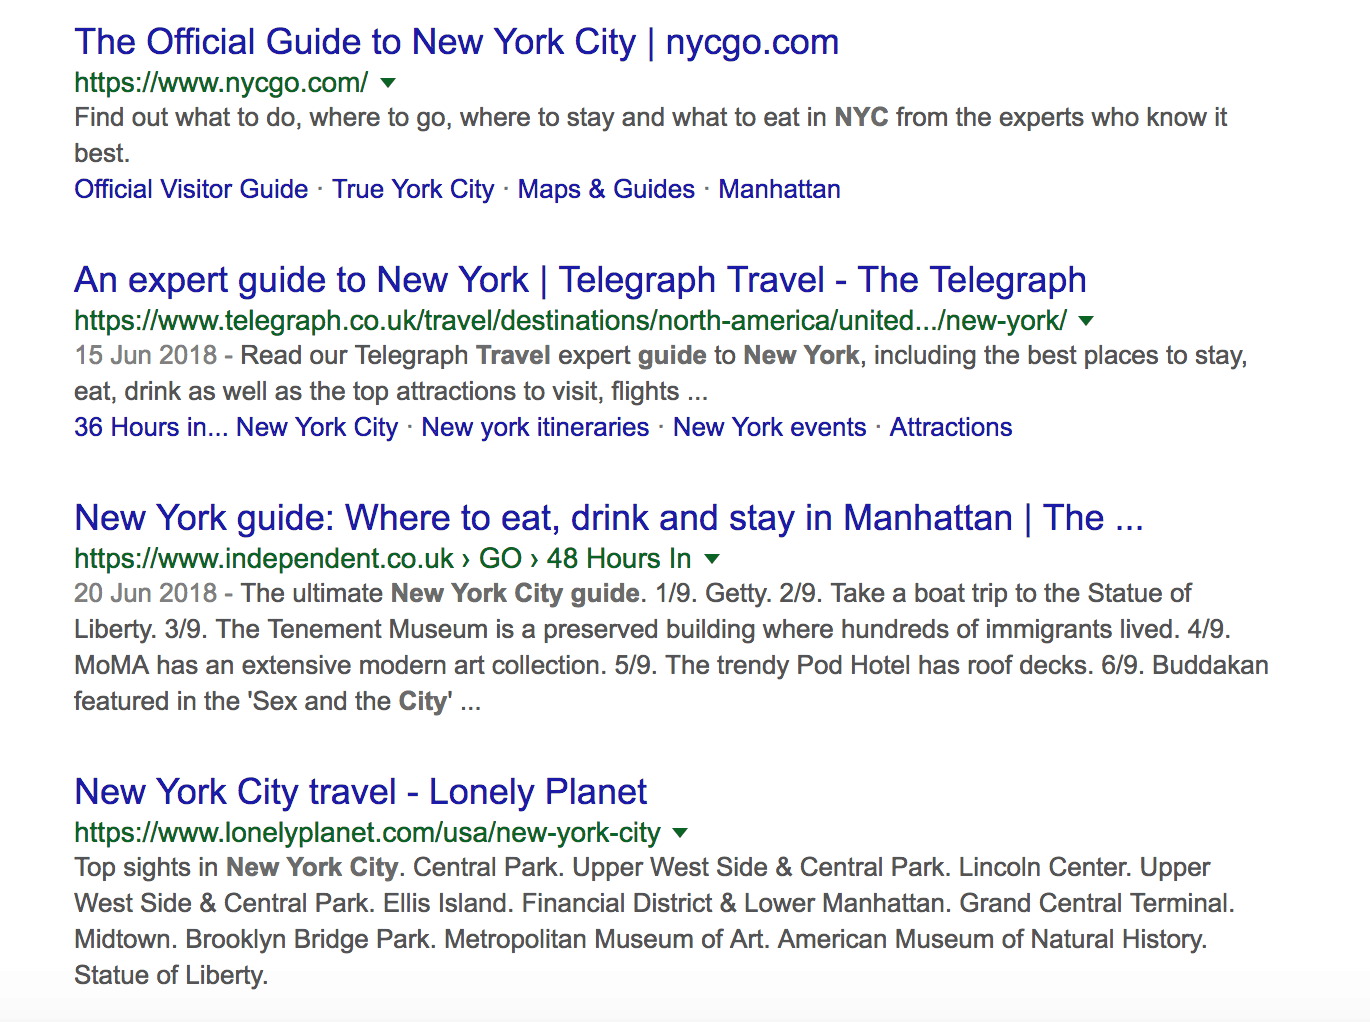 New York City Guide SERPs